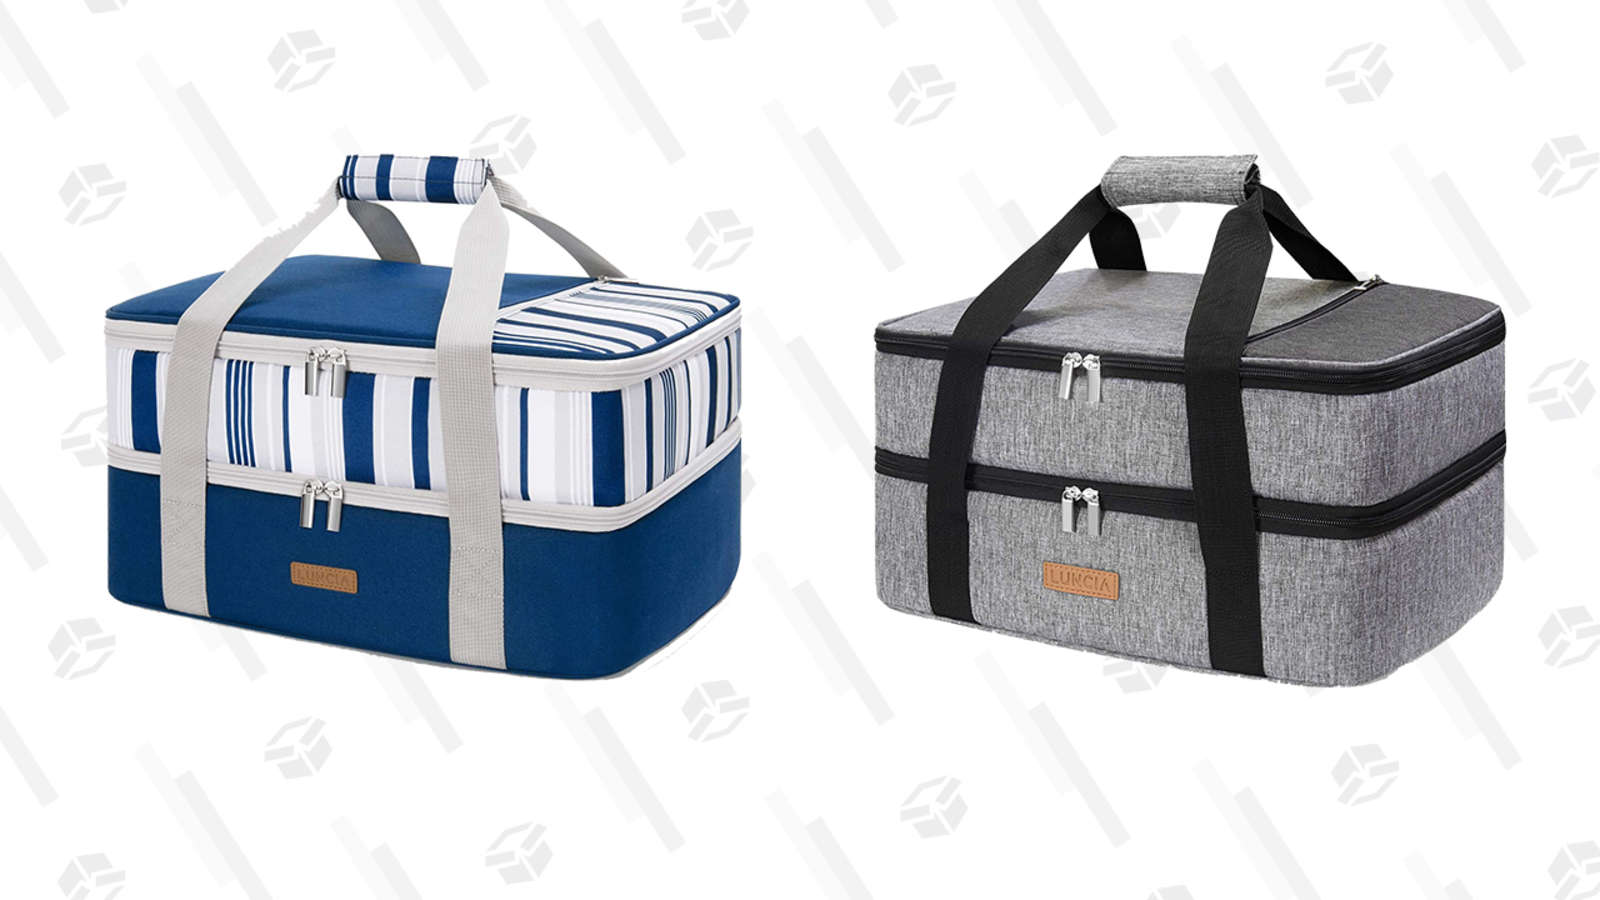 Keep That Hotdish Hot With 65% Off a Luncia Casserole Carrier, Only $11 With Promo Code